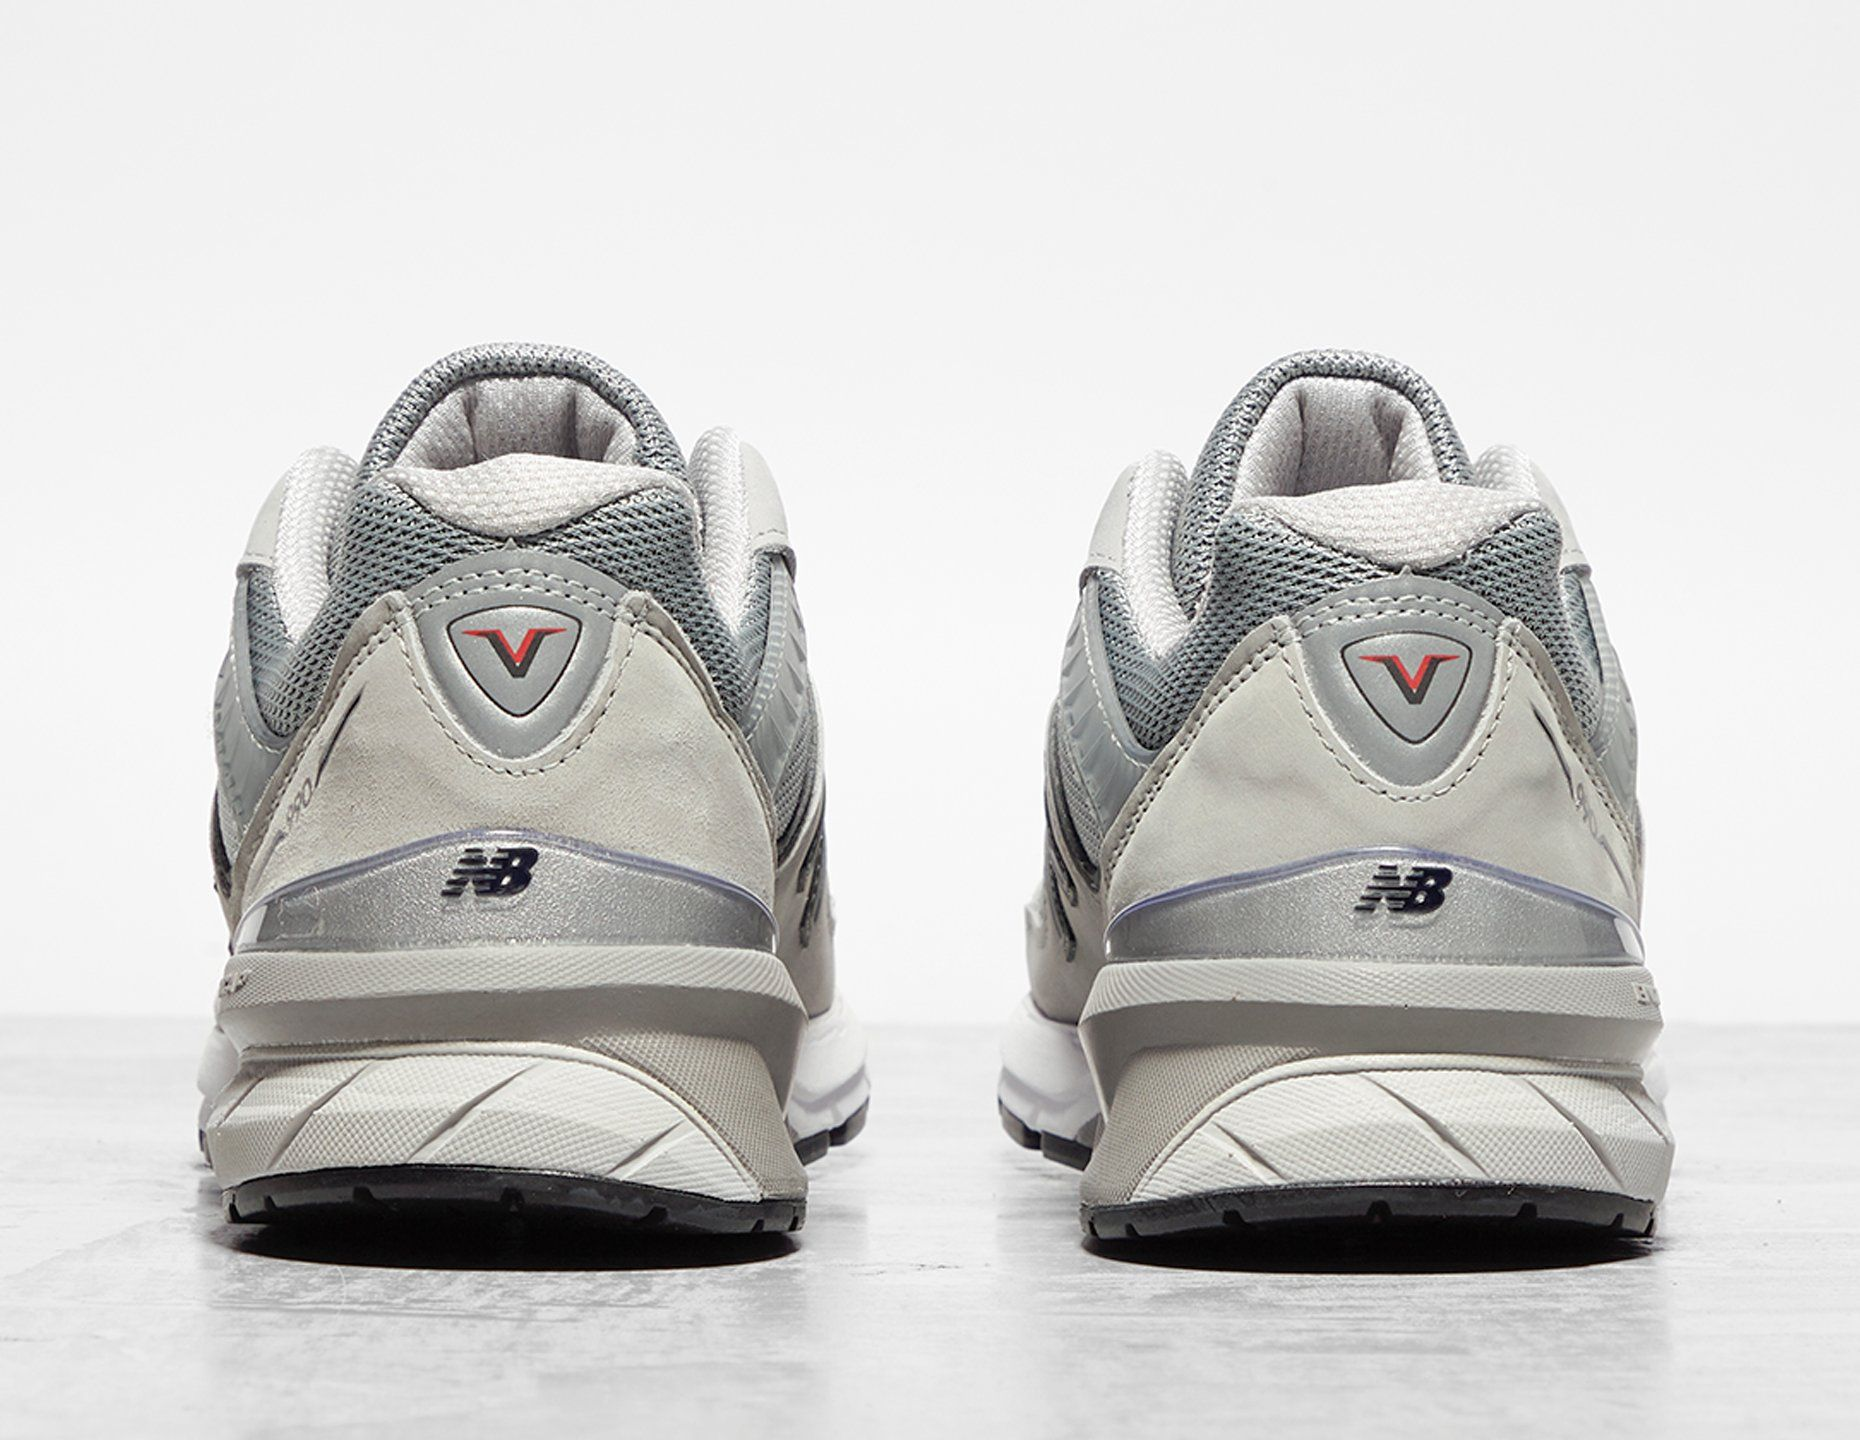 New Balance 990 v5 - Made in USA